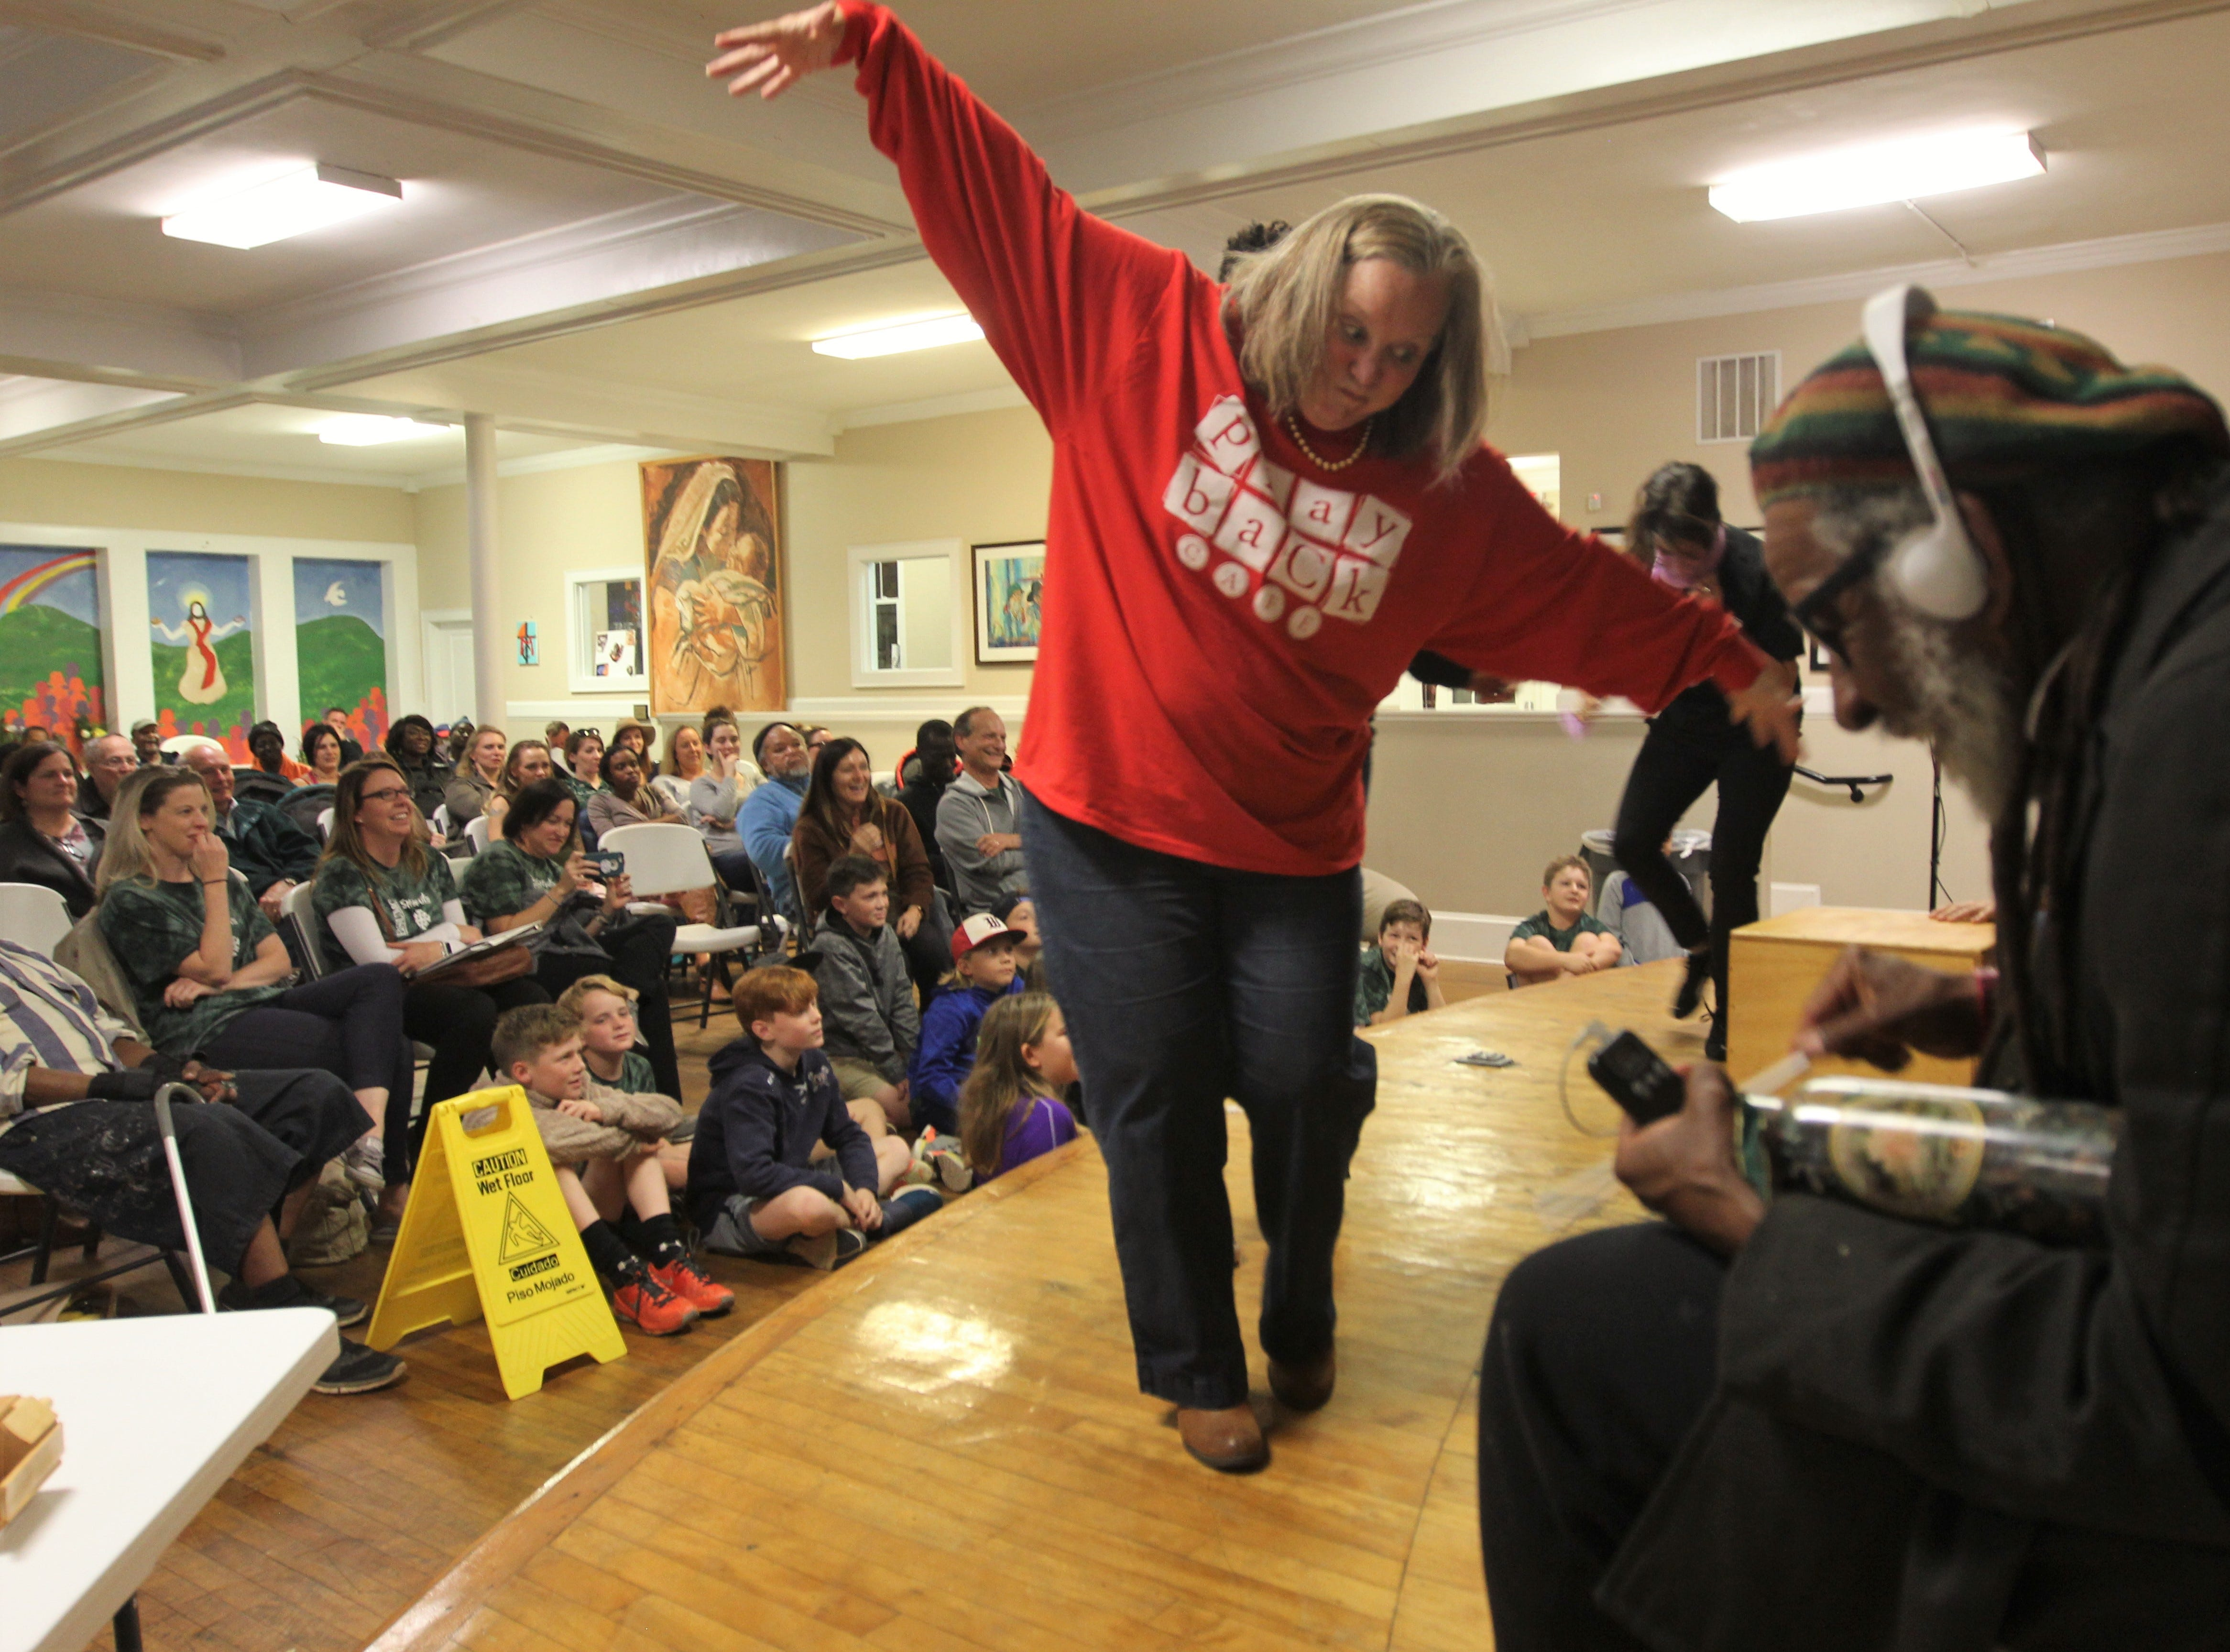 Julia Turlington plays as a Thanksgiving parade balloon while recreating a story from an audience member at Triune Mercy Center.